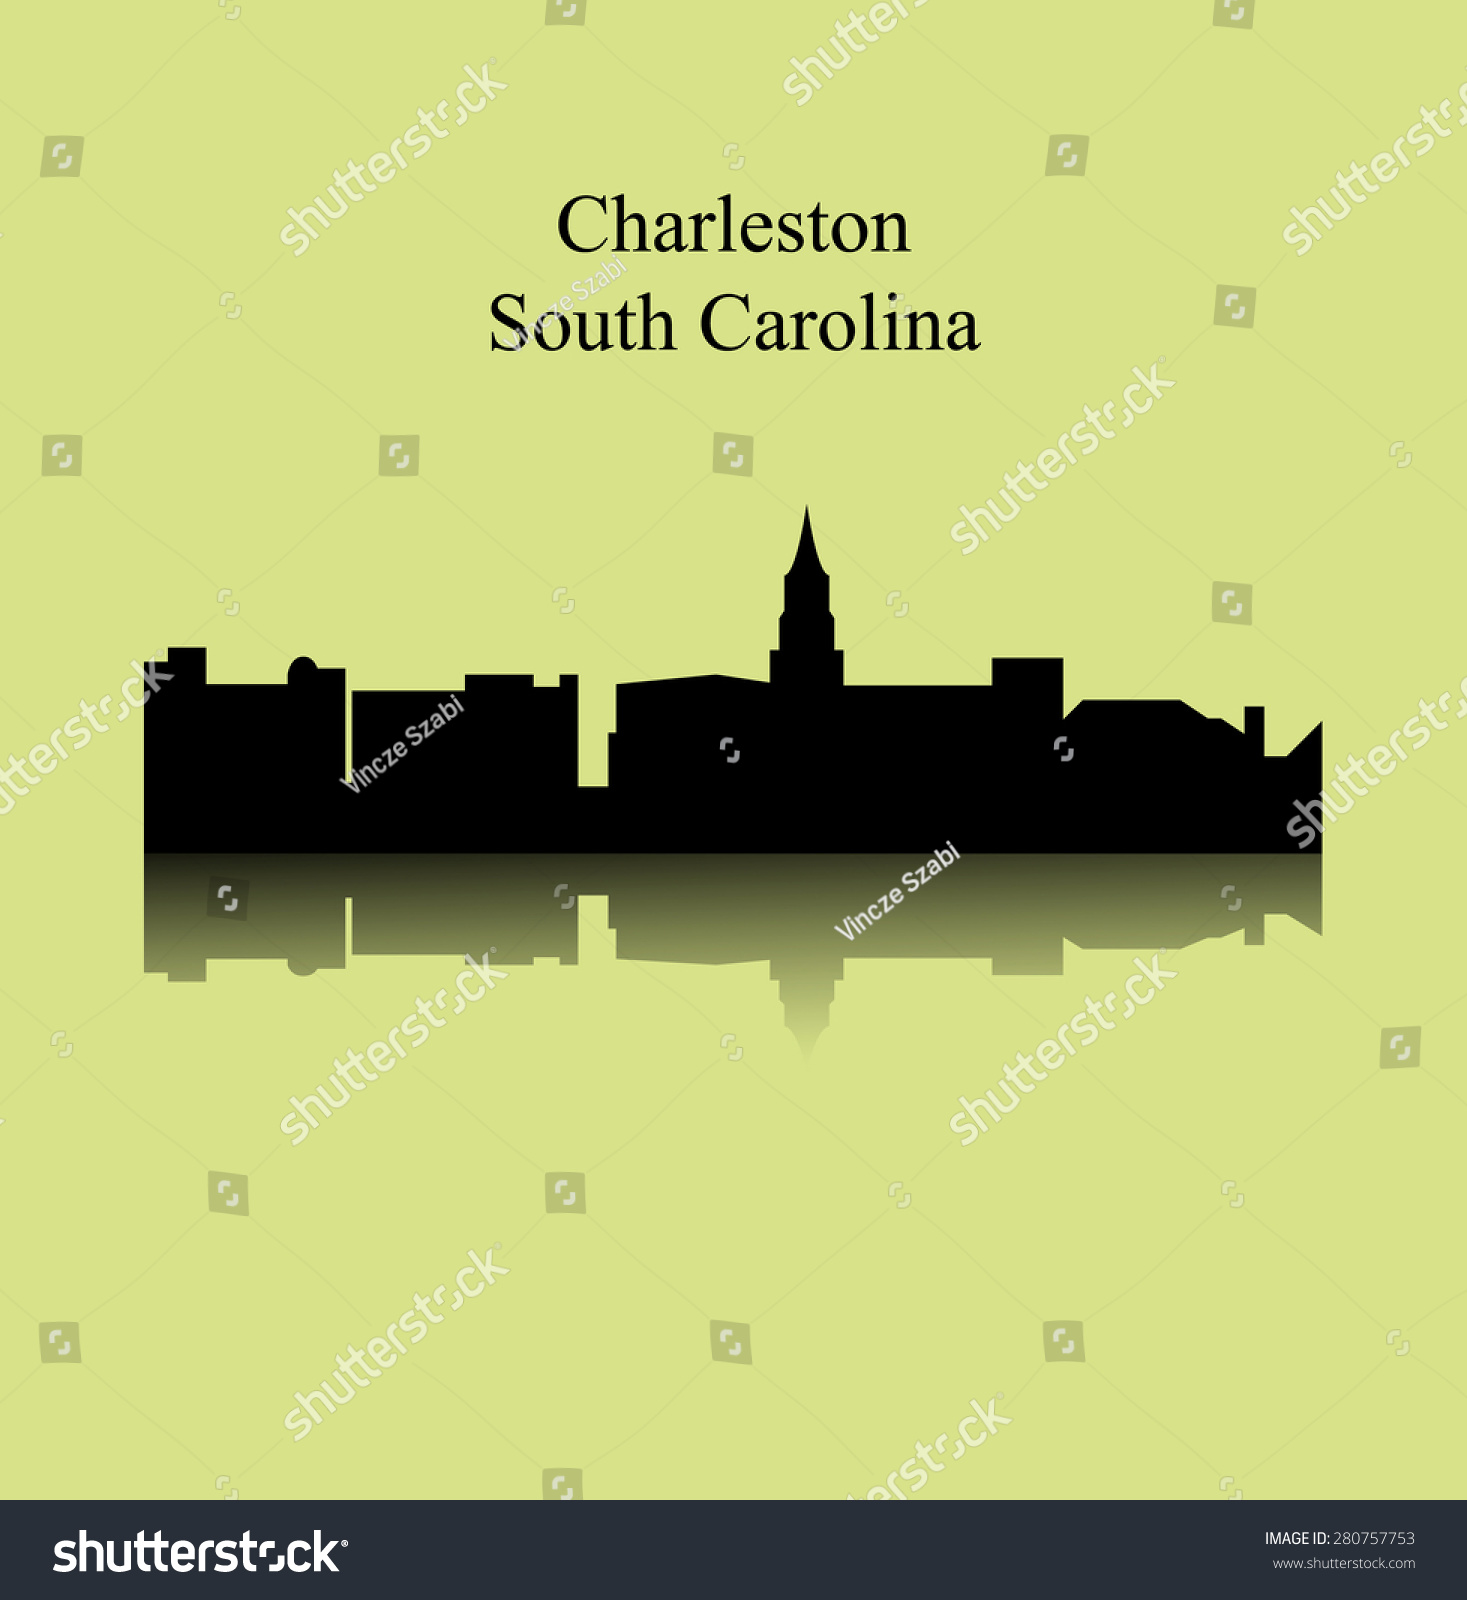 Charleston south carolina stock vector illustration for How do i get to charleston south carolina